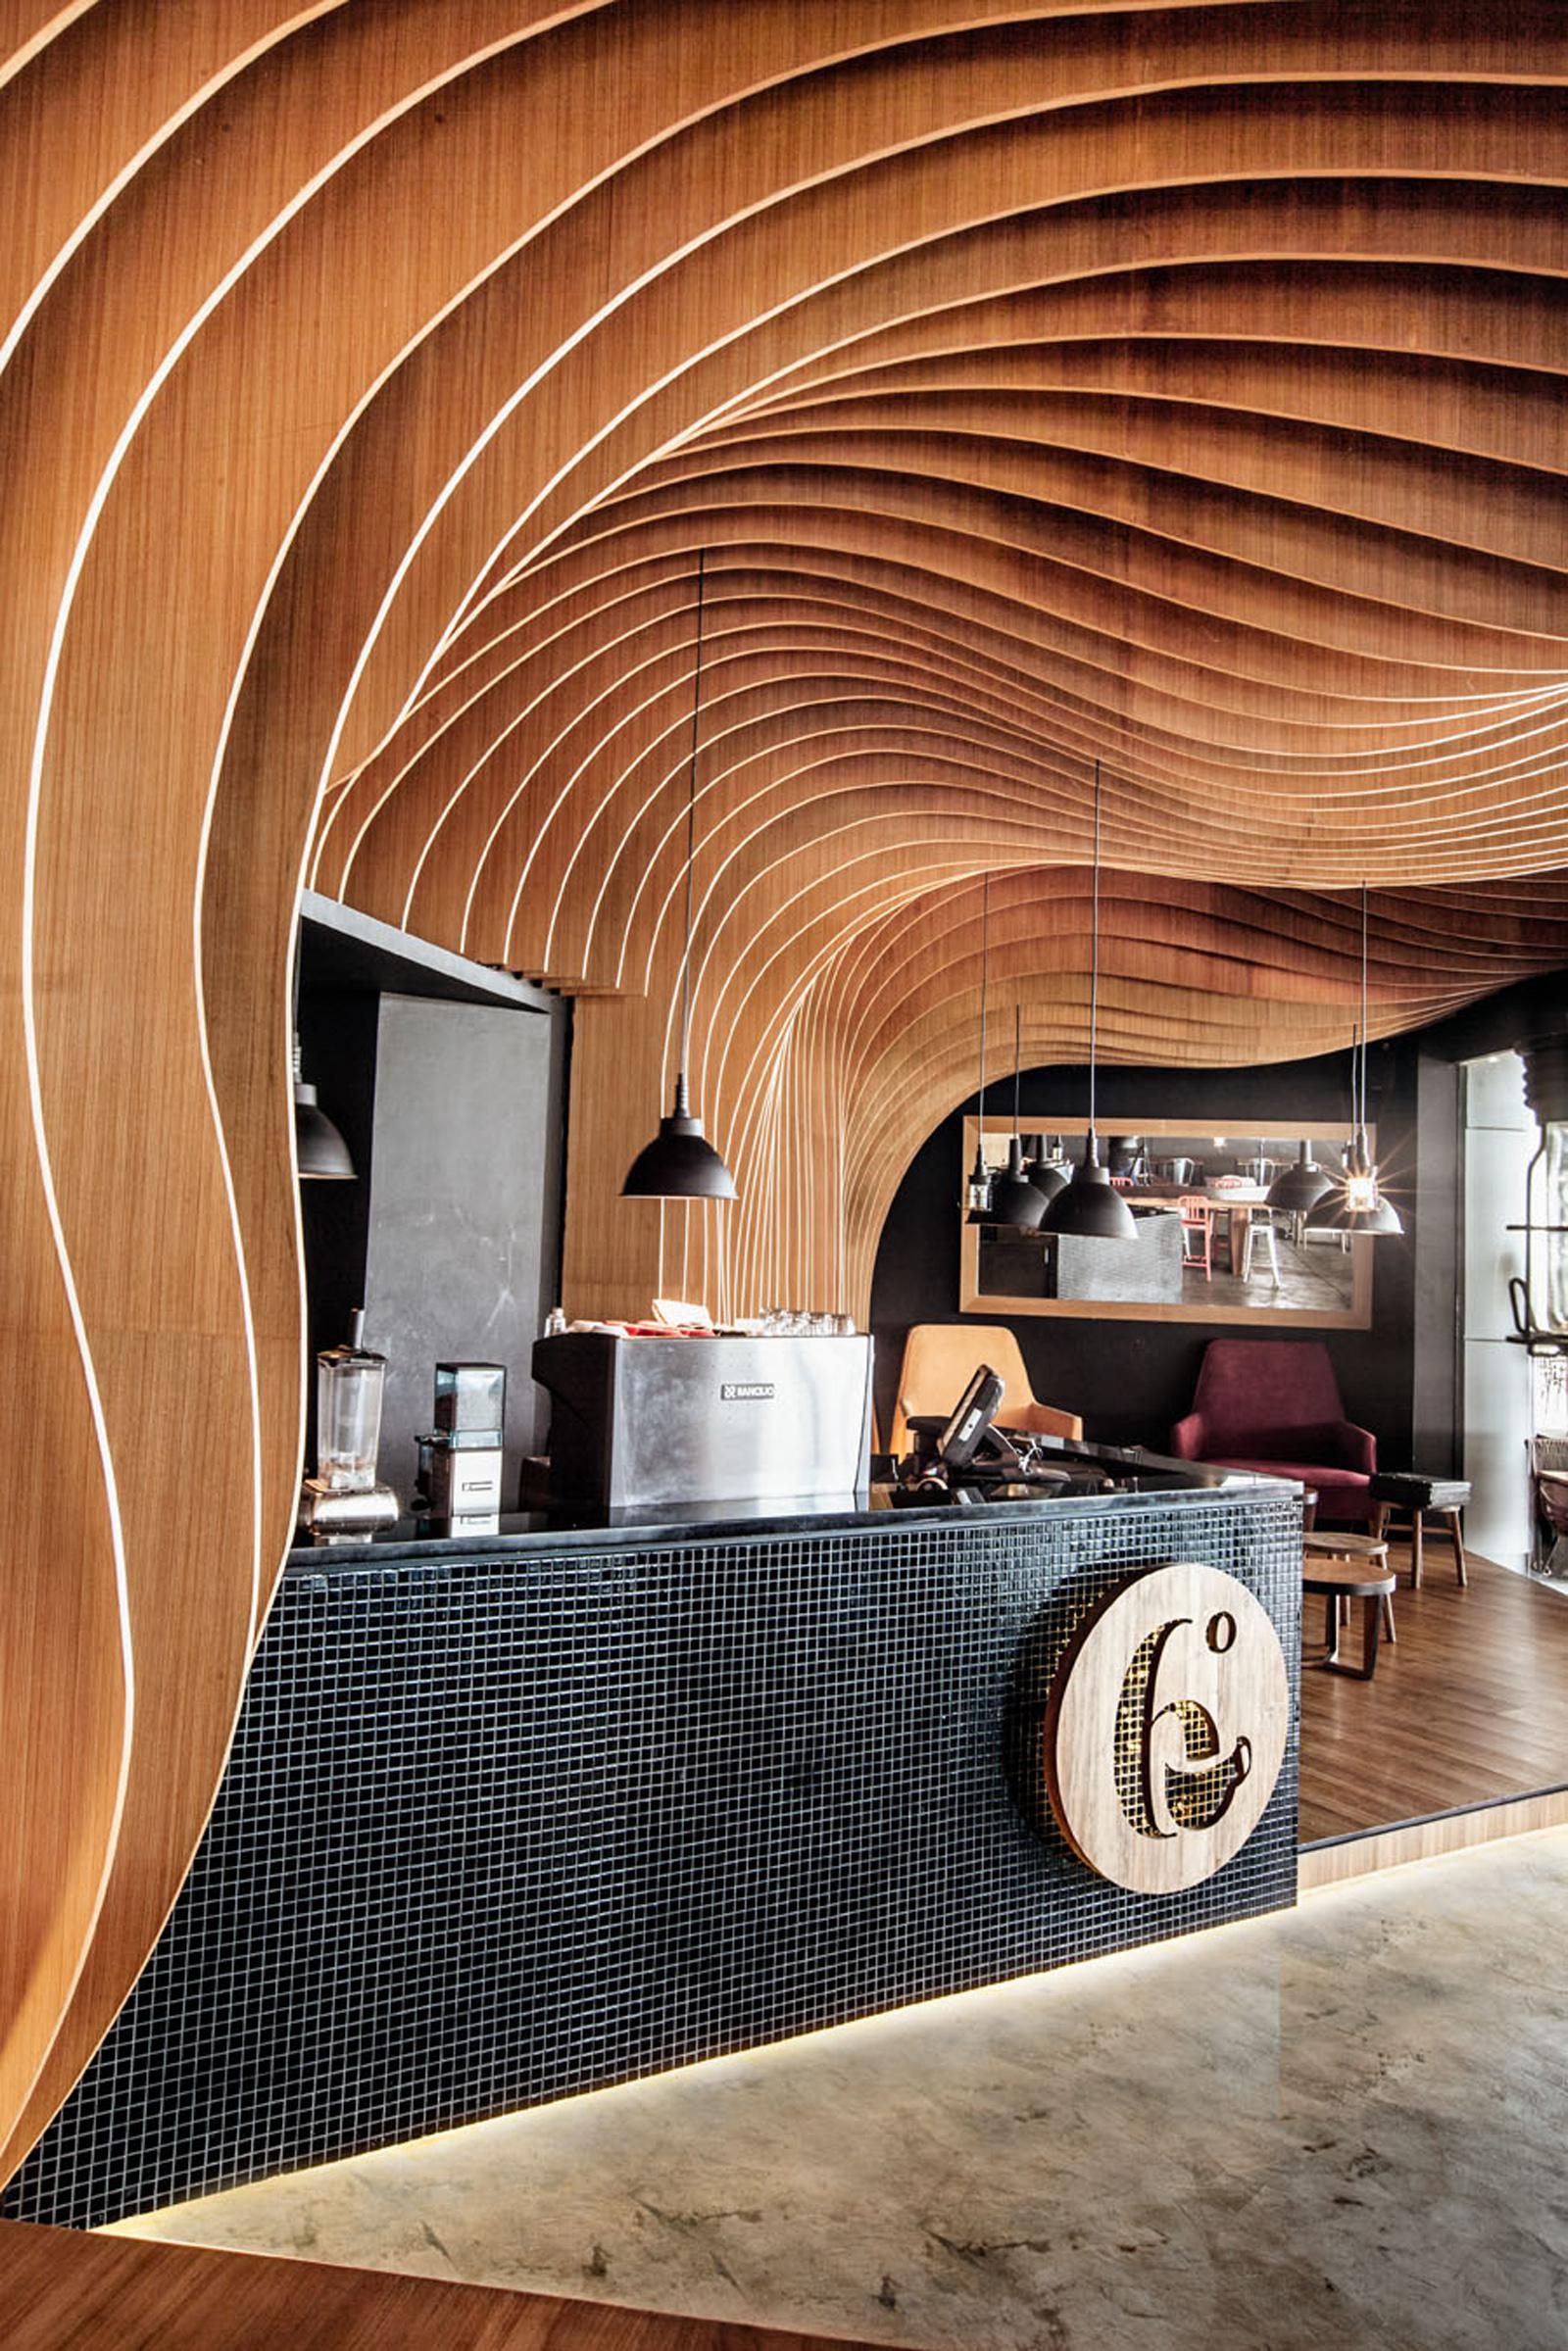 Six_Degrees_Cafe-OOZN_Design-5